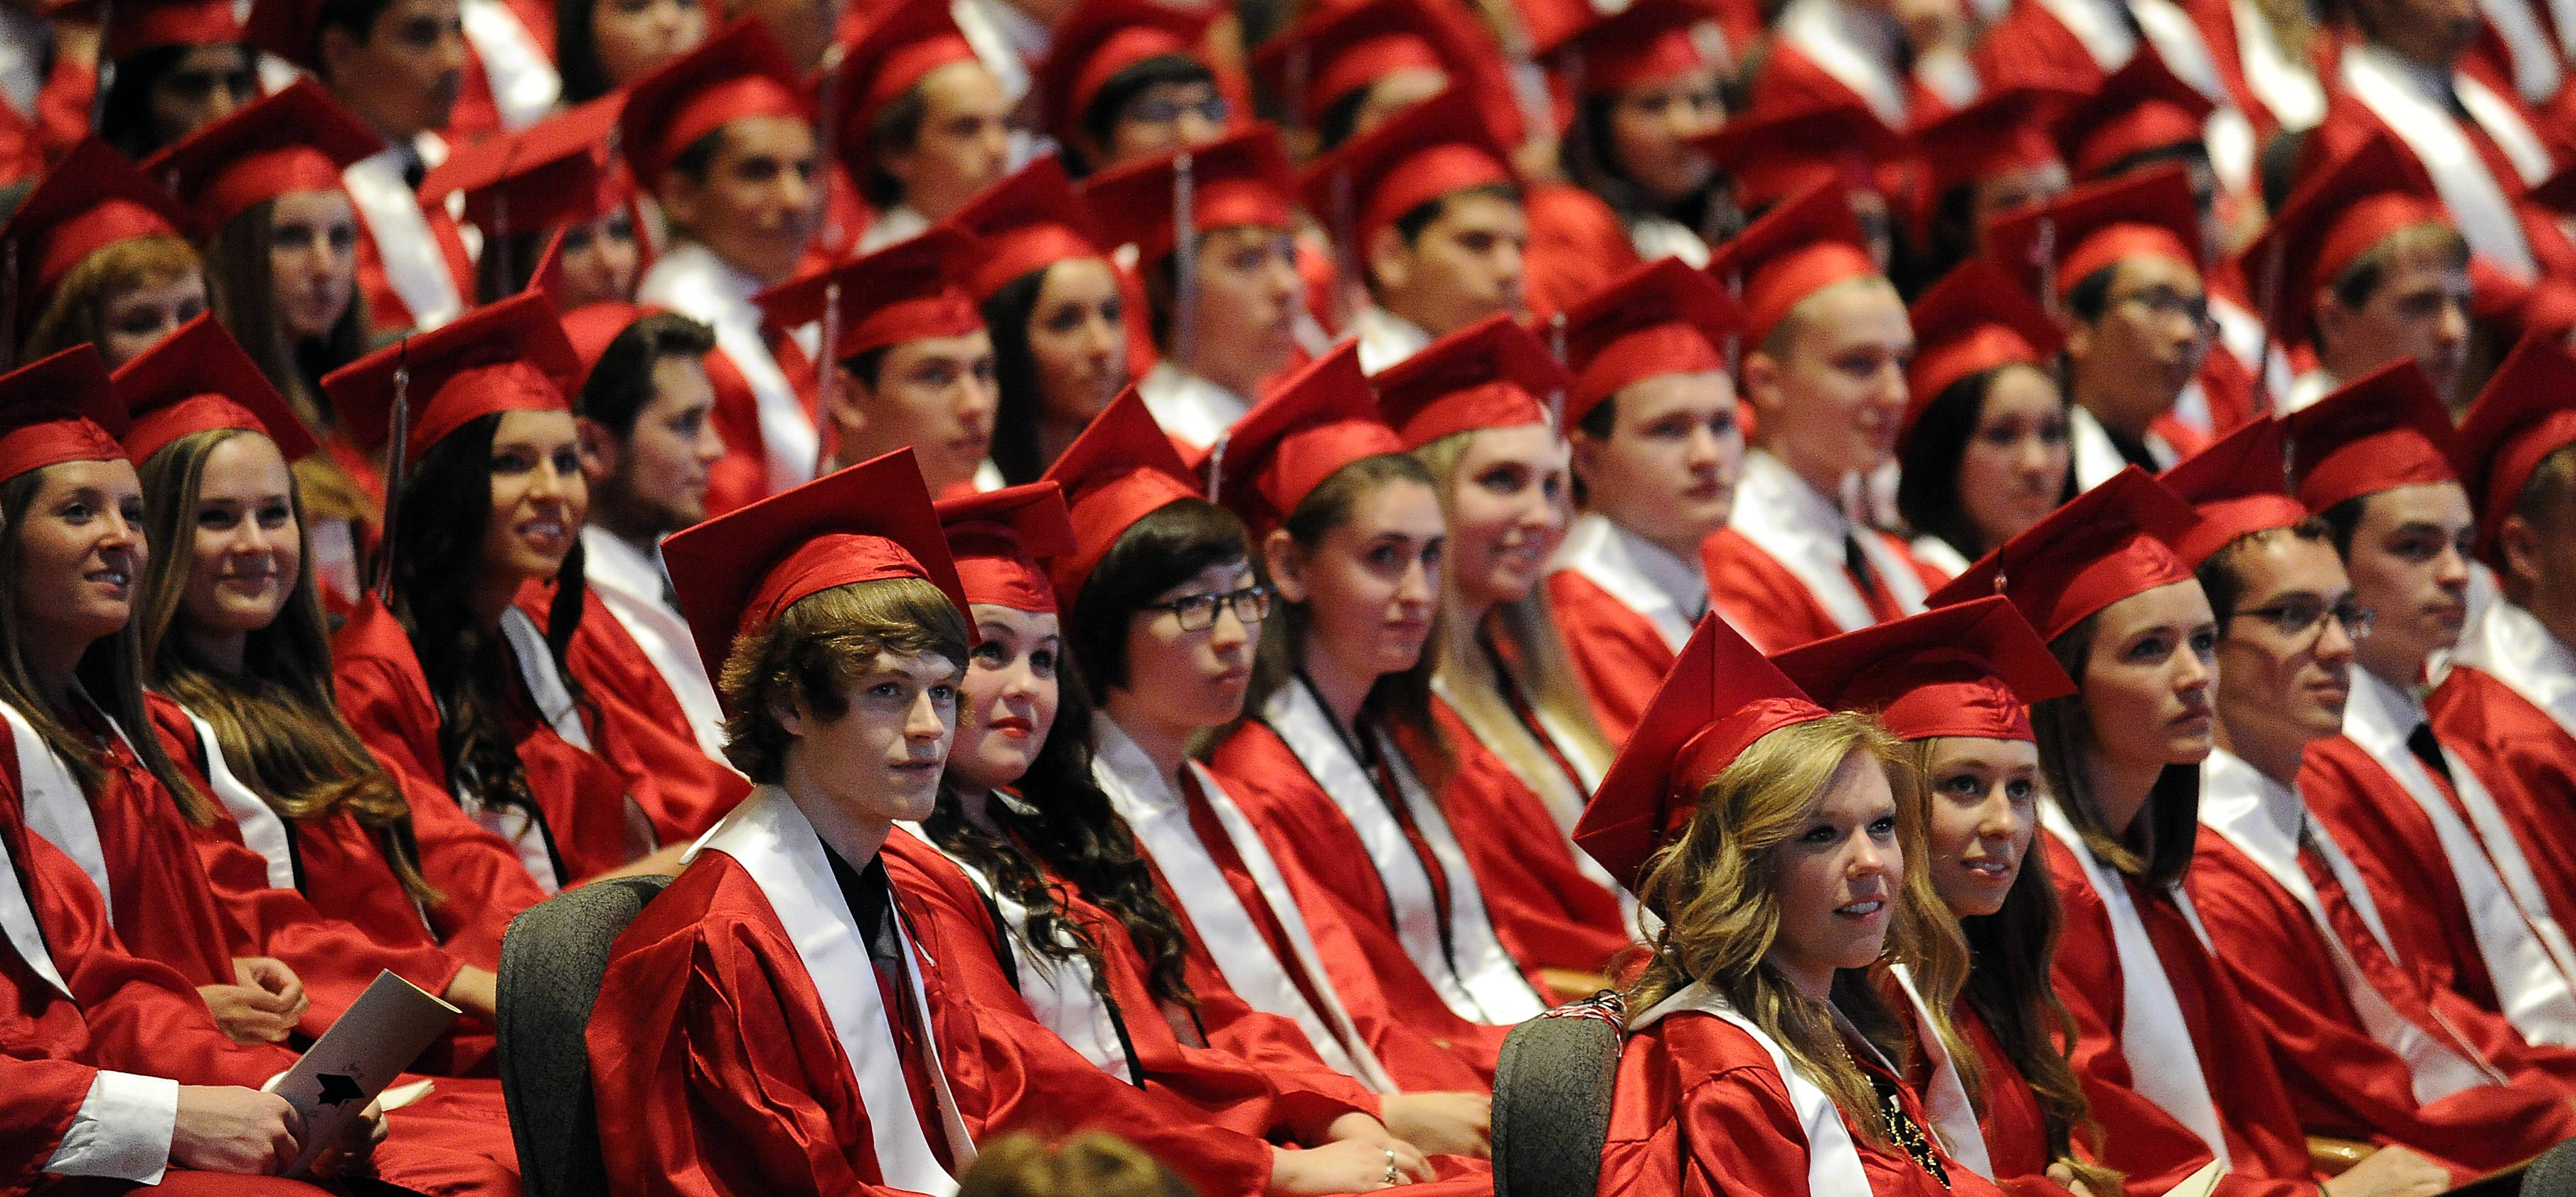 The 2014 senior class at the Barrington High School graduation ceremony looks on as the class is presented at Willow Creek Church on Friday.